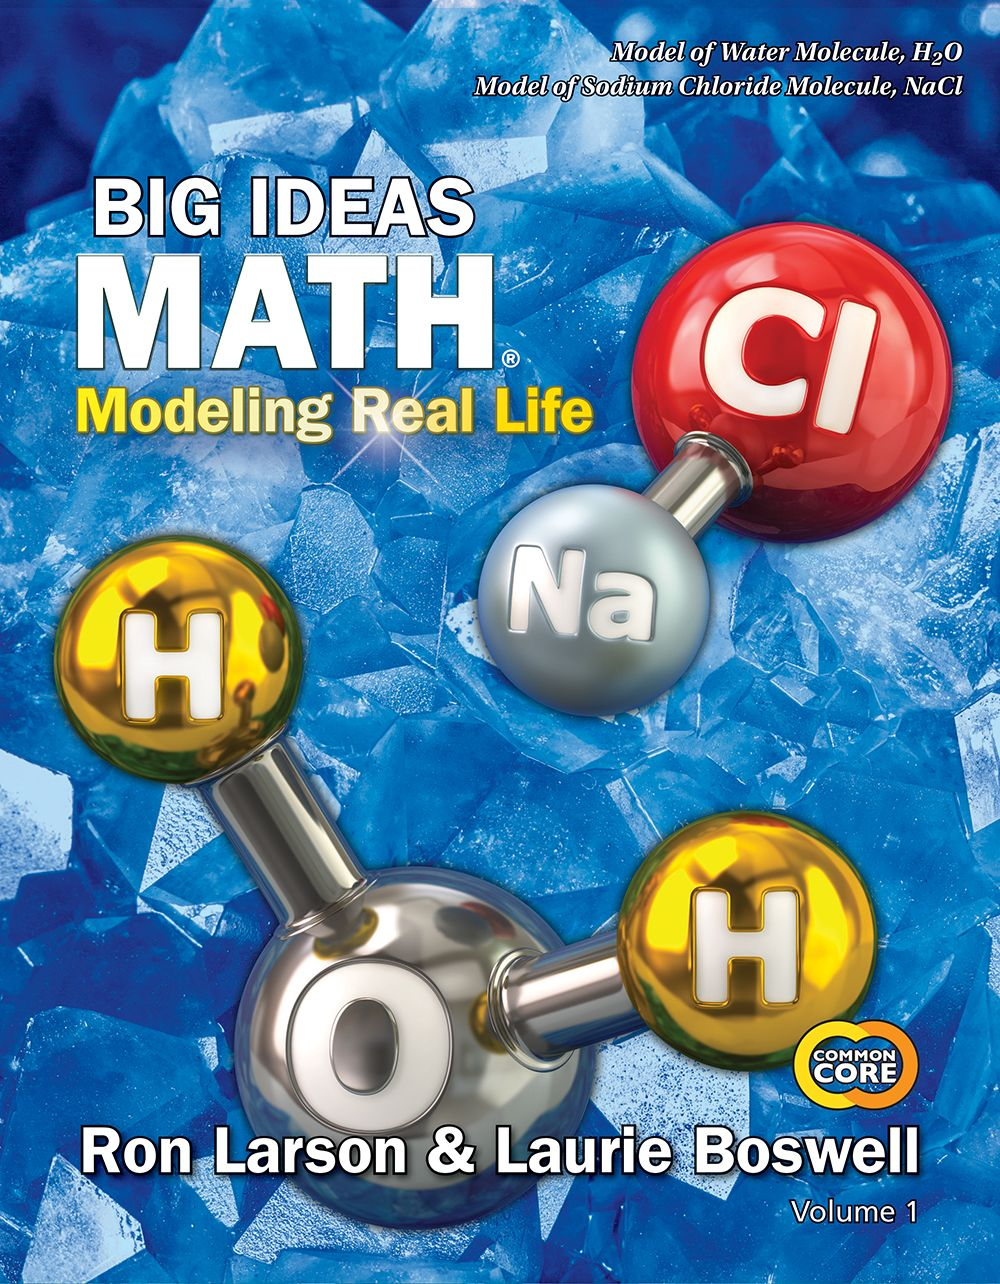 grade 5 math: the big ideas math: modeling real life program uses a